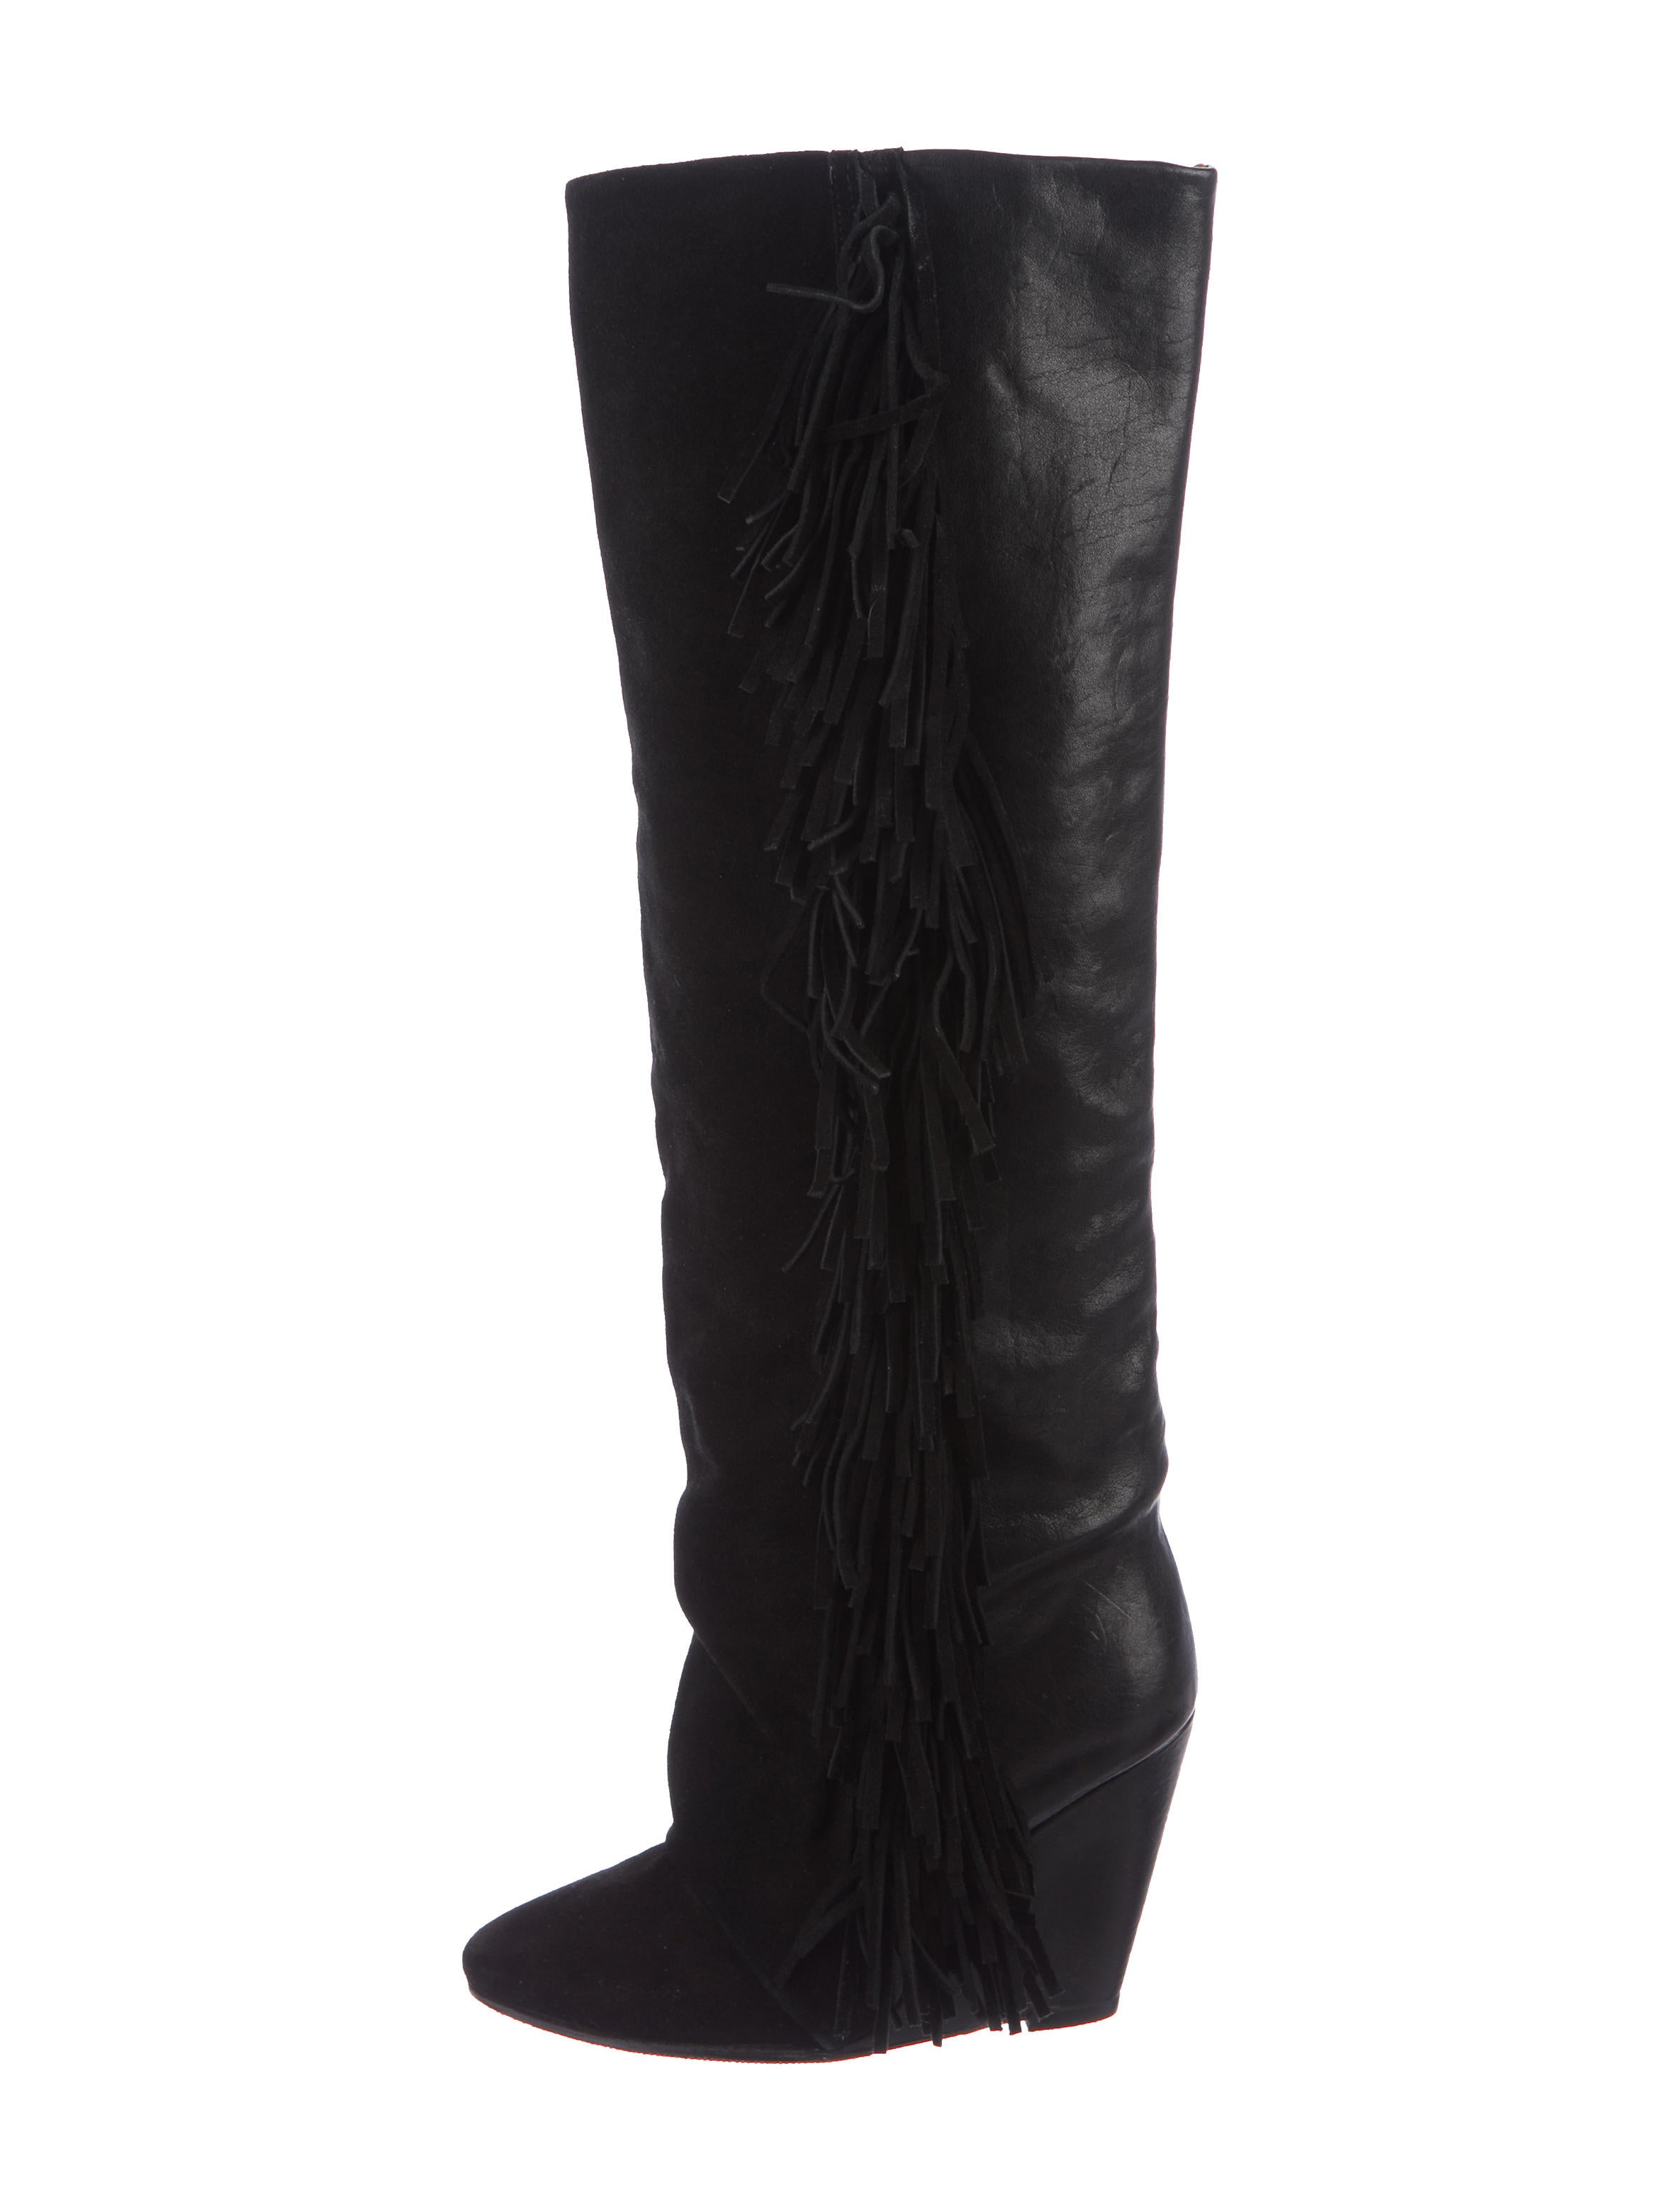 Isabel Marant Suede Fringe Knee-High Boots many kinds of online outlet discount wiki free shipping 2014 newest wTPjrqZ